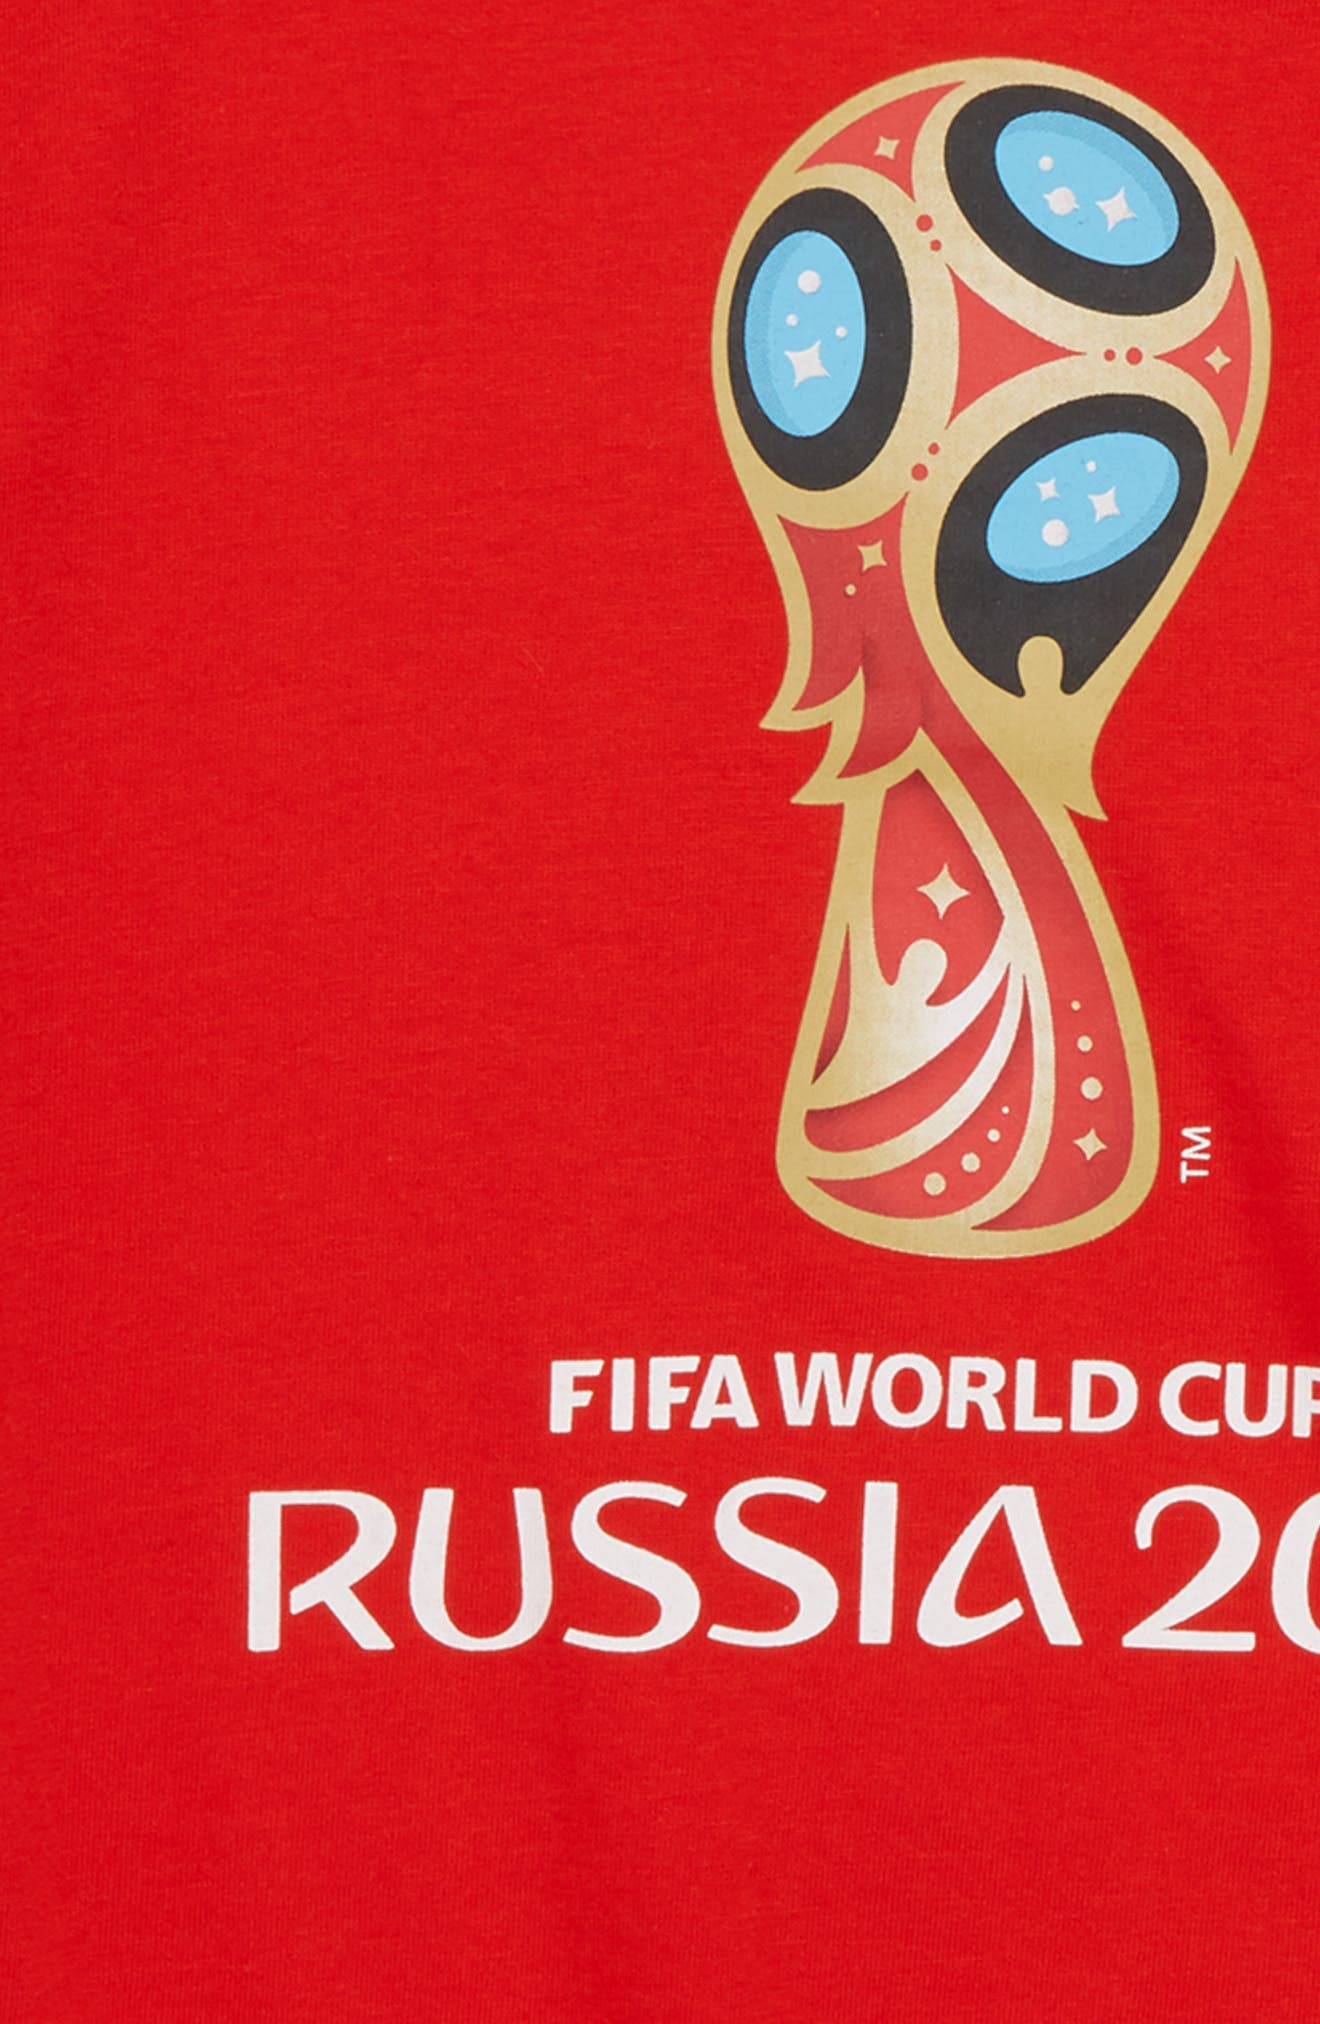 2018 FIFA World Cup Russia Soccer T-Shirt,                             Alternate thumbnail 2, color,                             Red